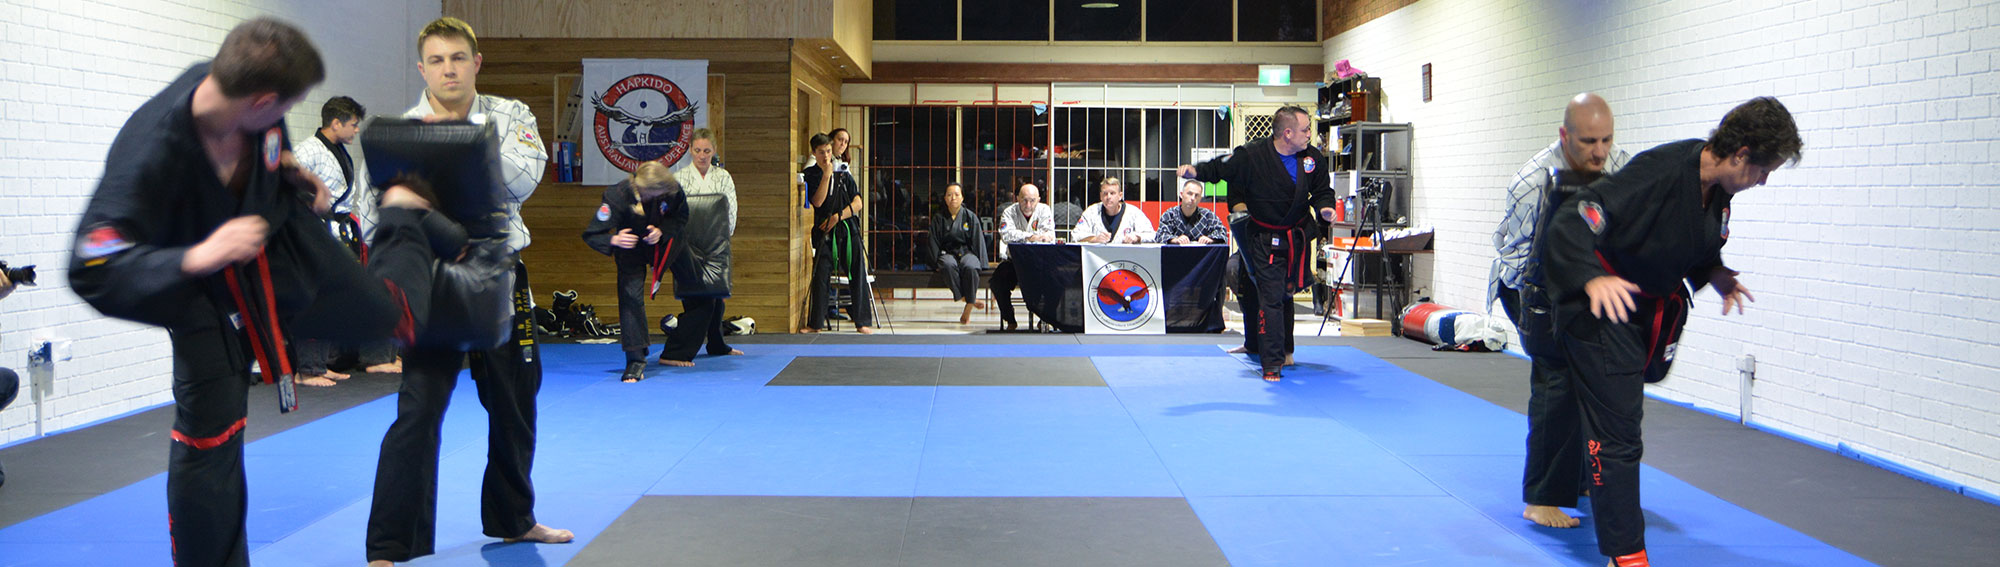 hapkido martial arts training